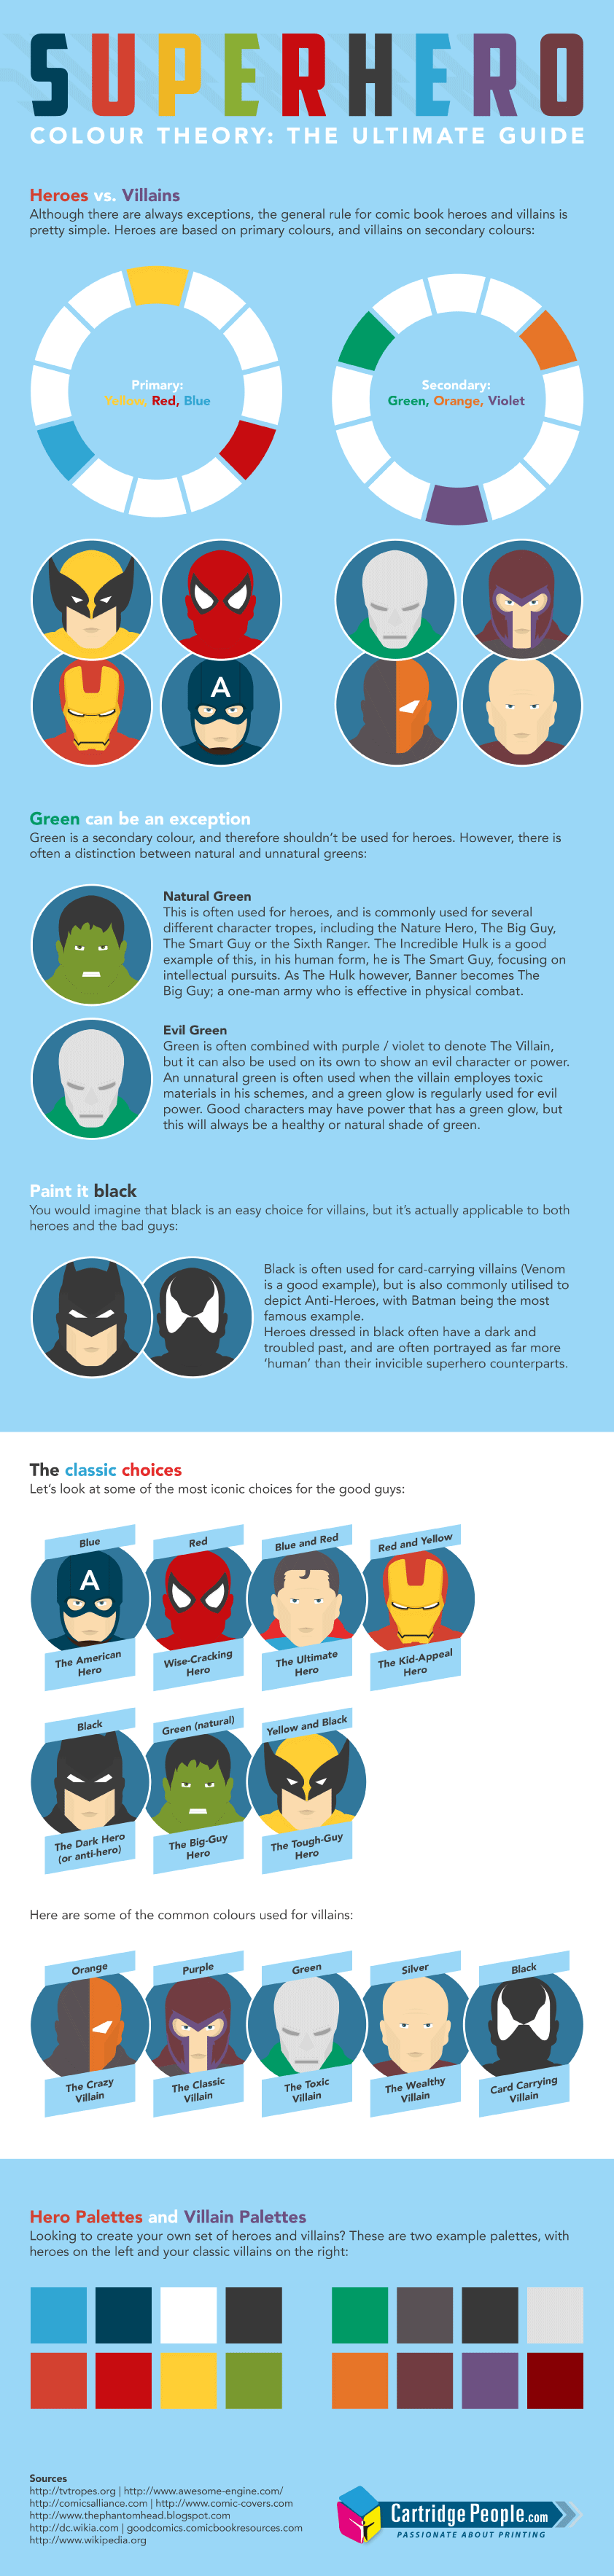 Superhero Colour Theory: The Ultimate Guide